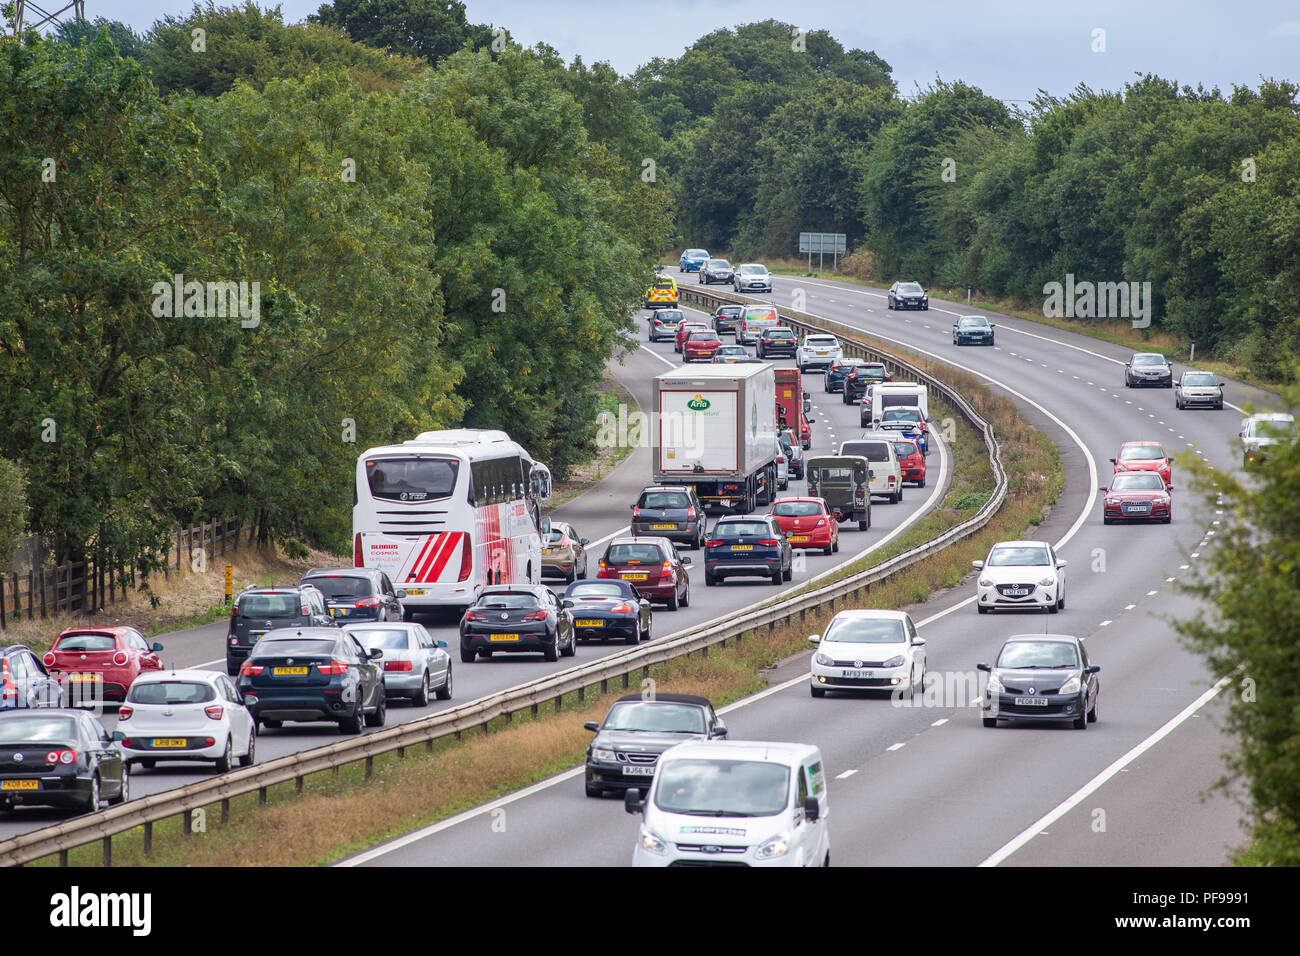 Queuing and stationary traffic on closed motorway. A1 motorway junction 7 southbound, Stevenage, Hertfordshire - Stock Image